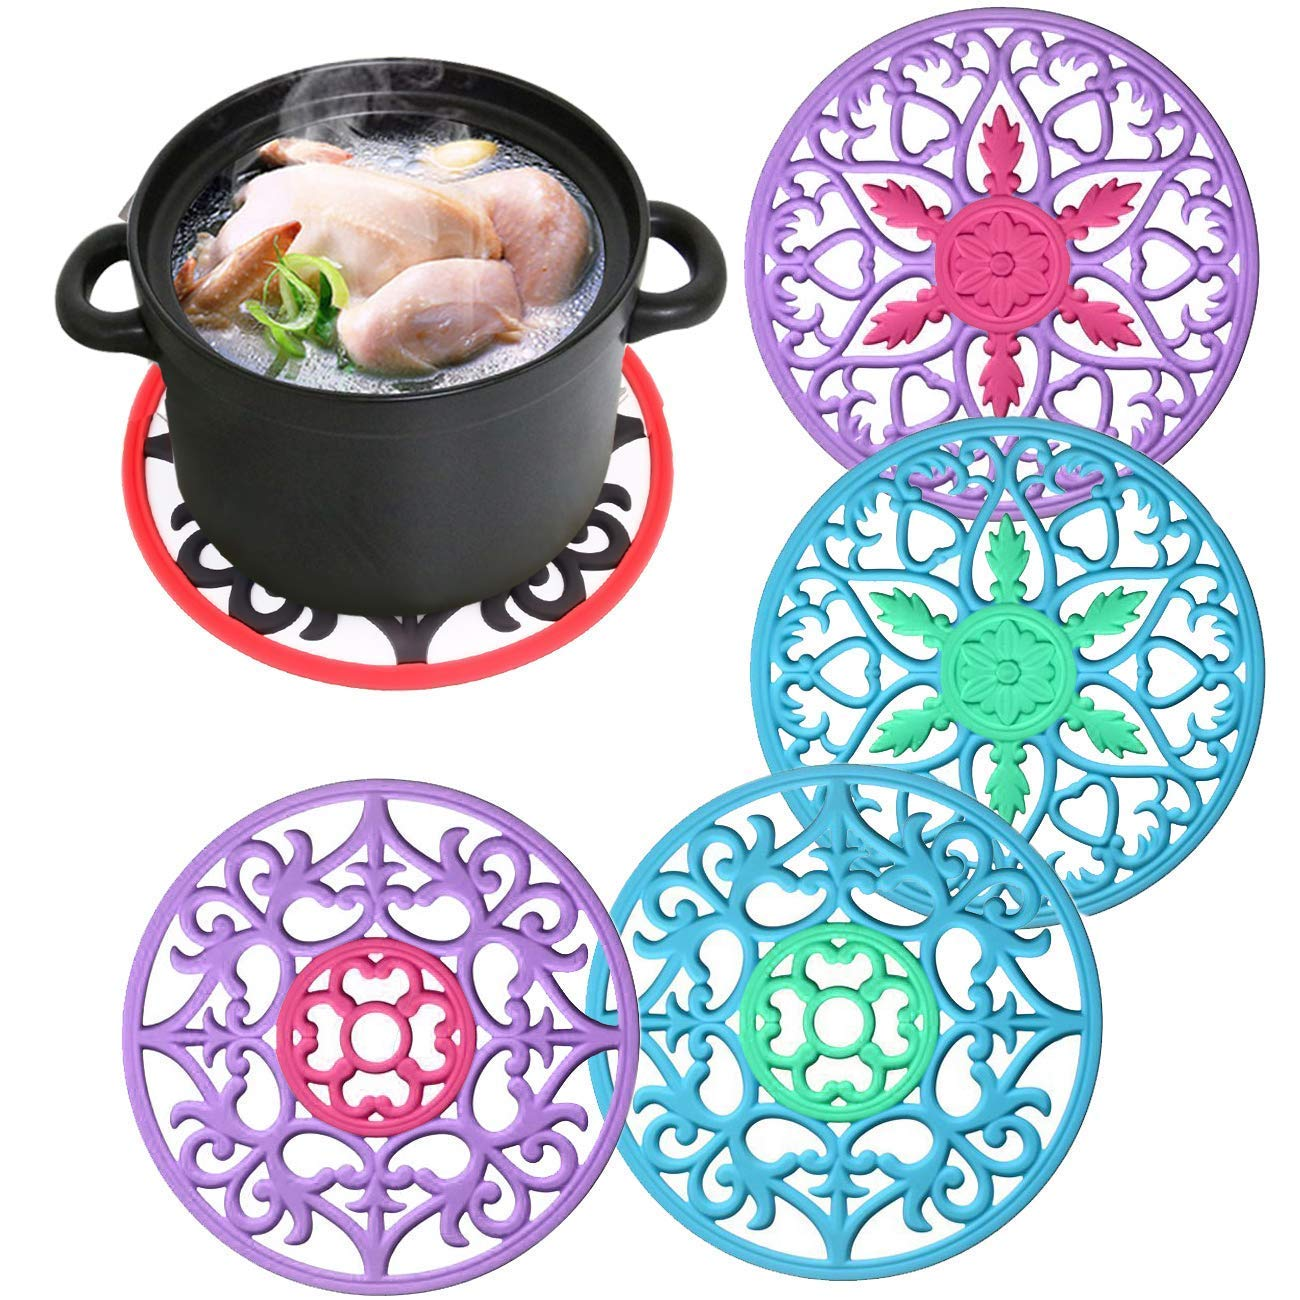 4 Set Soft Silicone Hot Pads,Trivet Mat,Flexible Hot Pads Slip Insulation Mat for Pot Holders, Dishes,Spoon Rest, Jar Opener & Coasters, Heat Resistant Bowl Saucepan Mat Candygirl